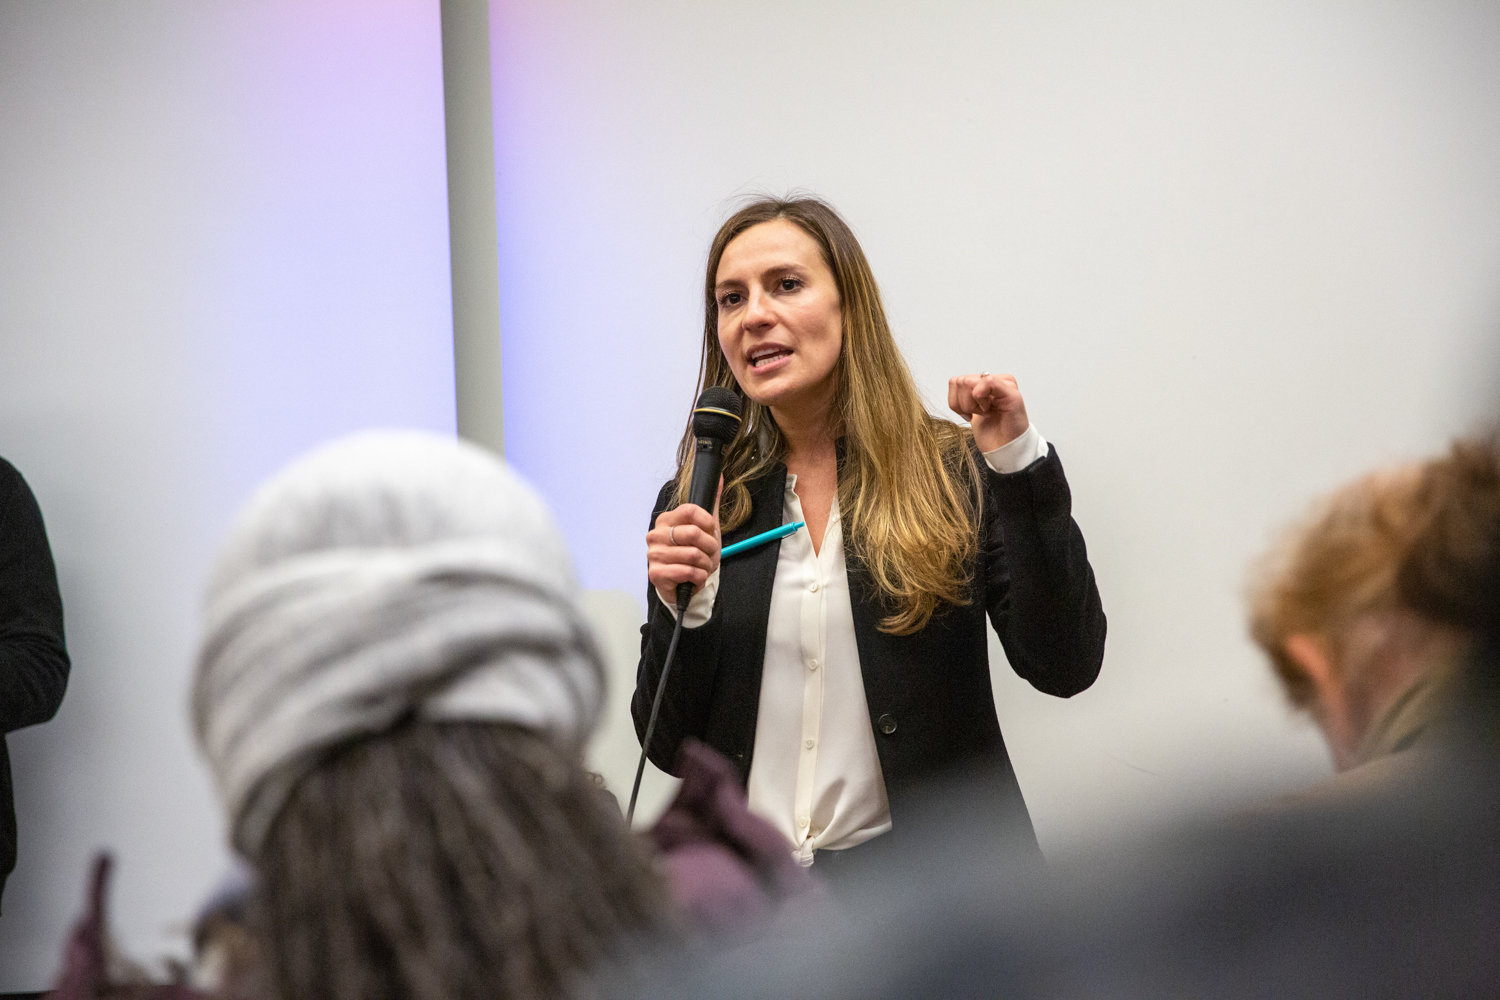 State Sen. Alessandra Biaggi applauds the legislative efforts by state Sen. Brad Hoylman and Assemblywoman Linda Rosenthal to extend the deadline for the Child Victims Act's look-back period to August 2021. If passed, the statute of limitations preventing someone from taking an accused abuser to court would be waived for another year.